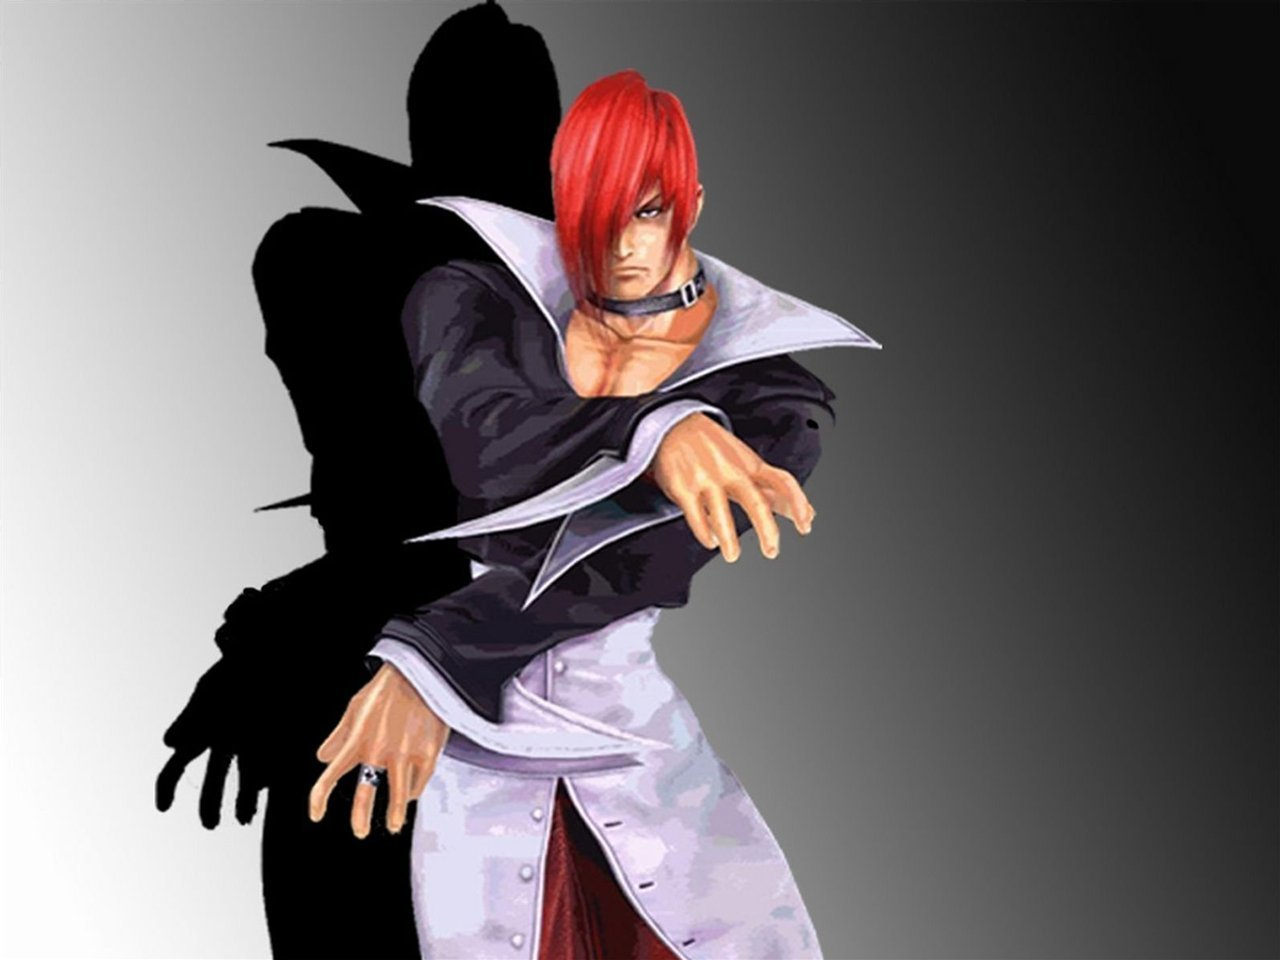 KOF - iori - The King of Fighters Wallpaper (13368607) - Fanpop